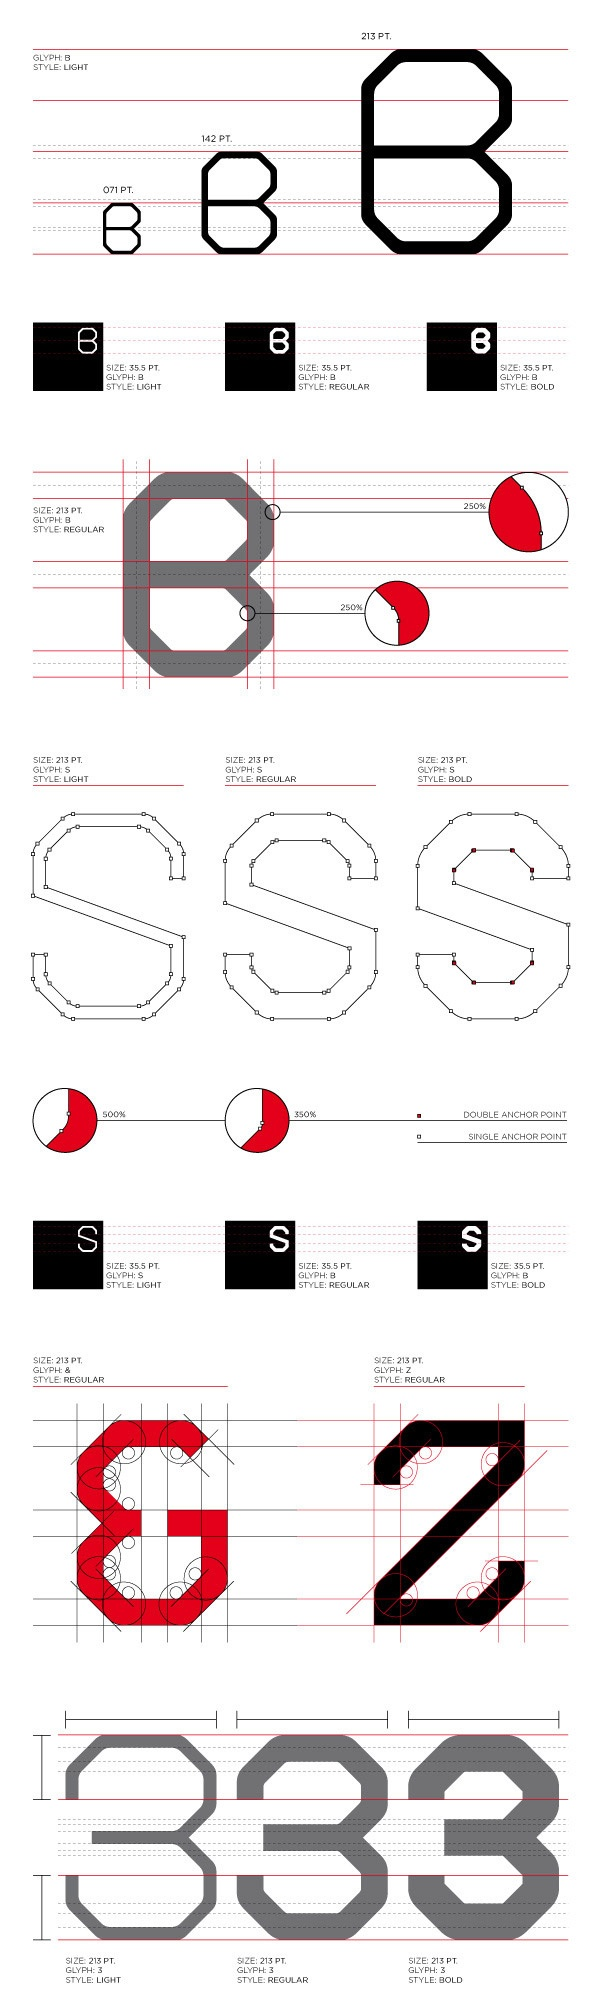 Strouzas' FTRT typeface is the result of a 3-month research and design based on capital Latin and Greek letters, numbers, and symbols in three different weights and a total of 251 different glyphs. The FTRT typeface has very modular typeface in which all the glyphs have exactly the same height and weight. This characteristic offers typesetting to be easier in a grid environment or for lettering in both a landscape or portrait setting.